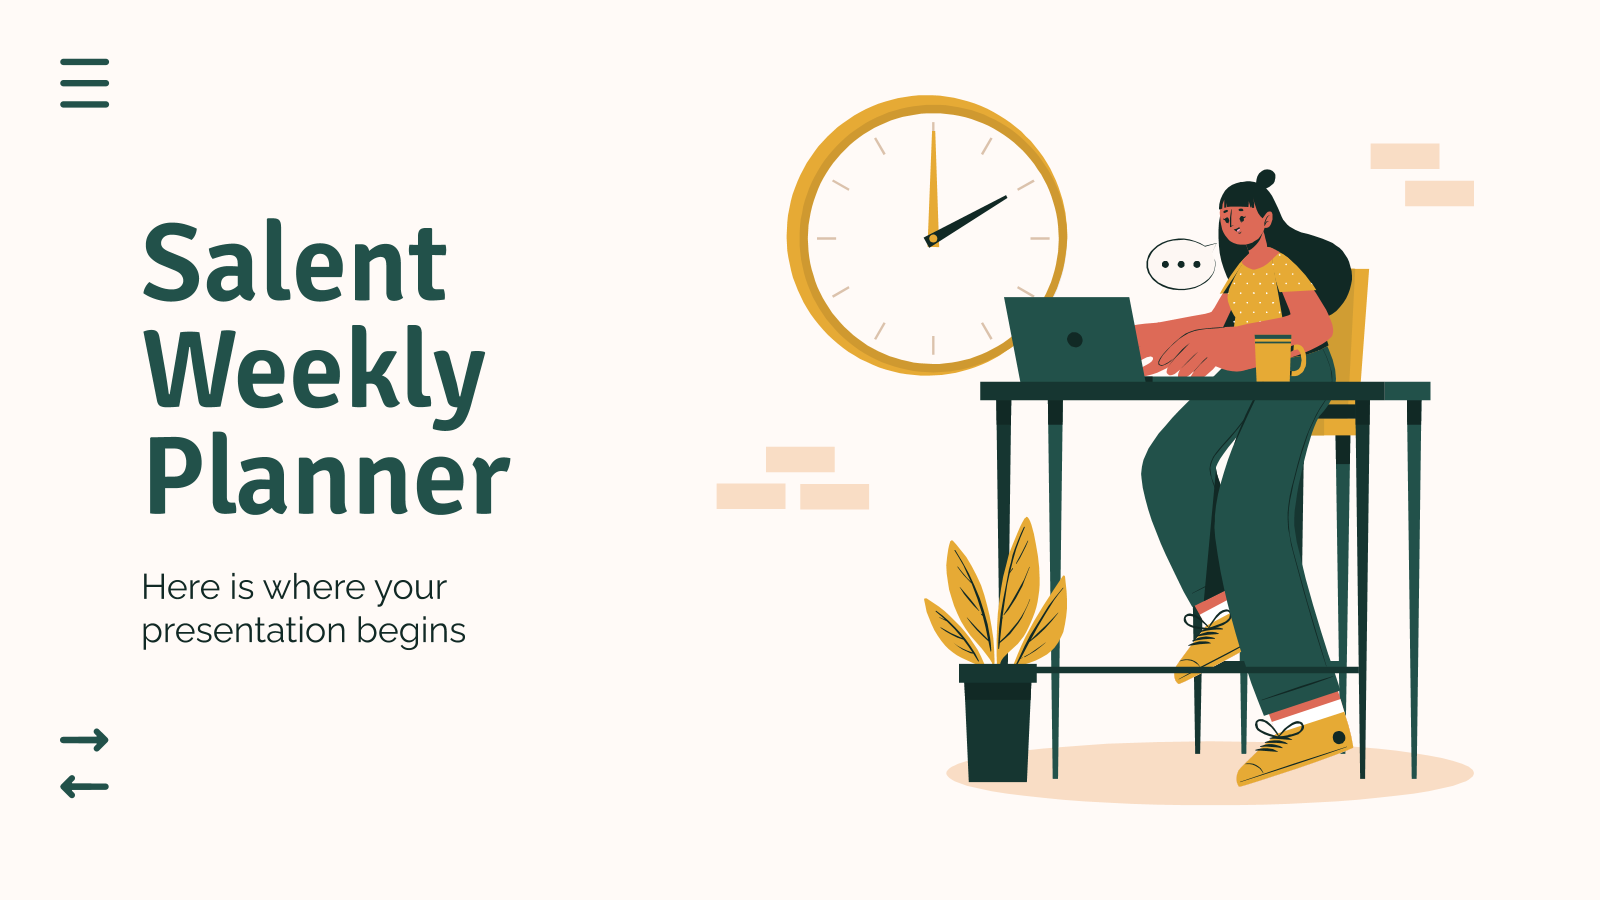 Salent Weekly Planner presentation template